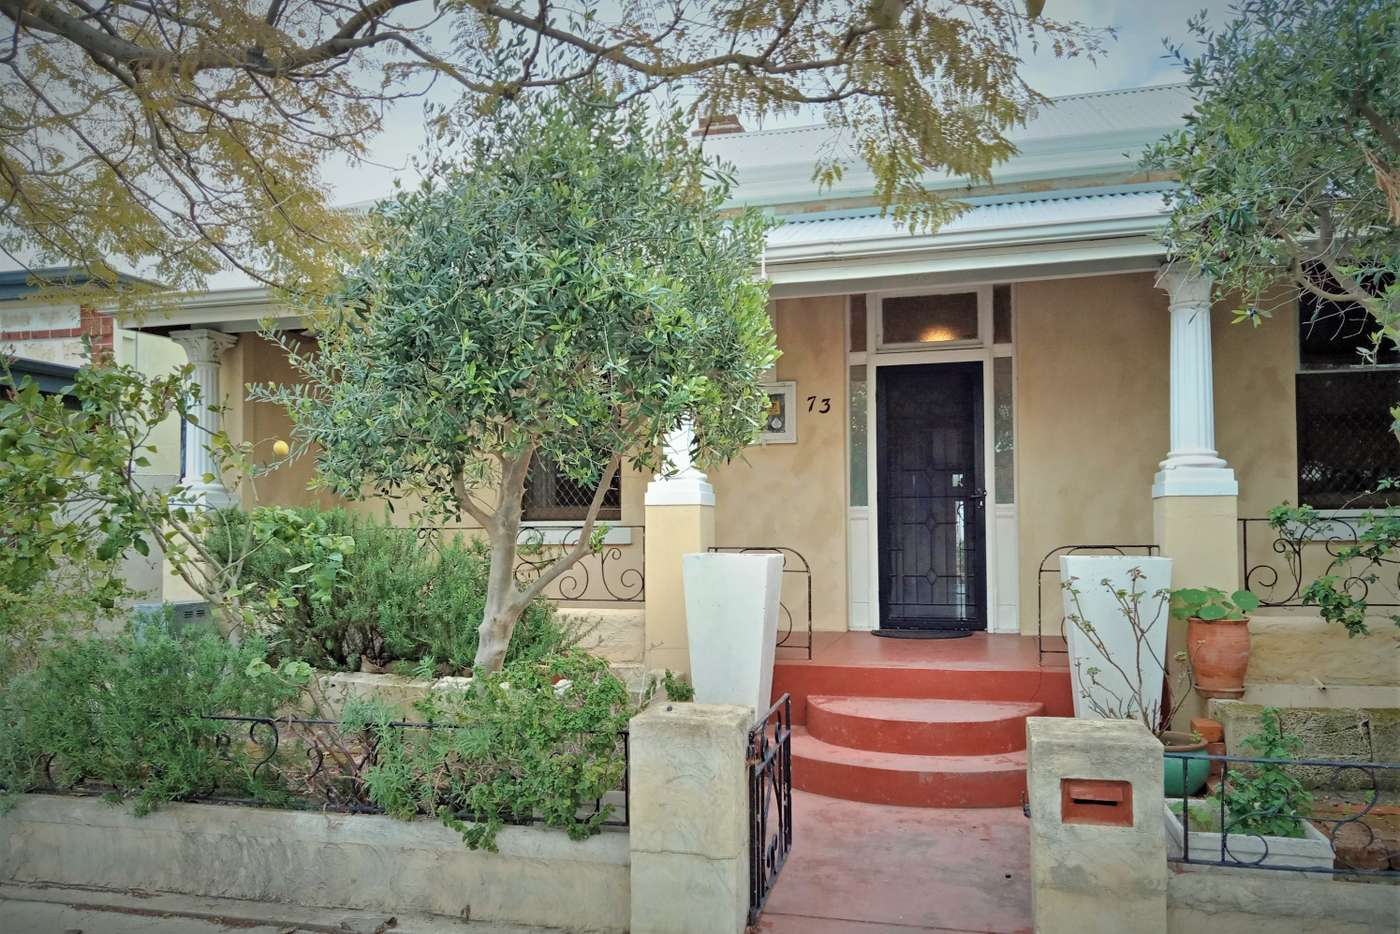 Main view of Homely house listing, 73 Attfield St, Fremantle WA 6160